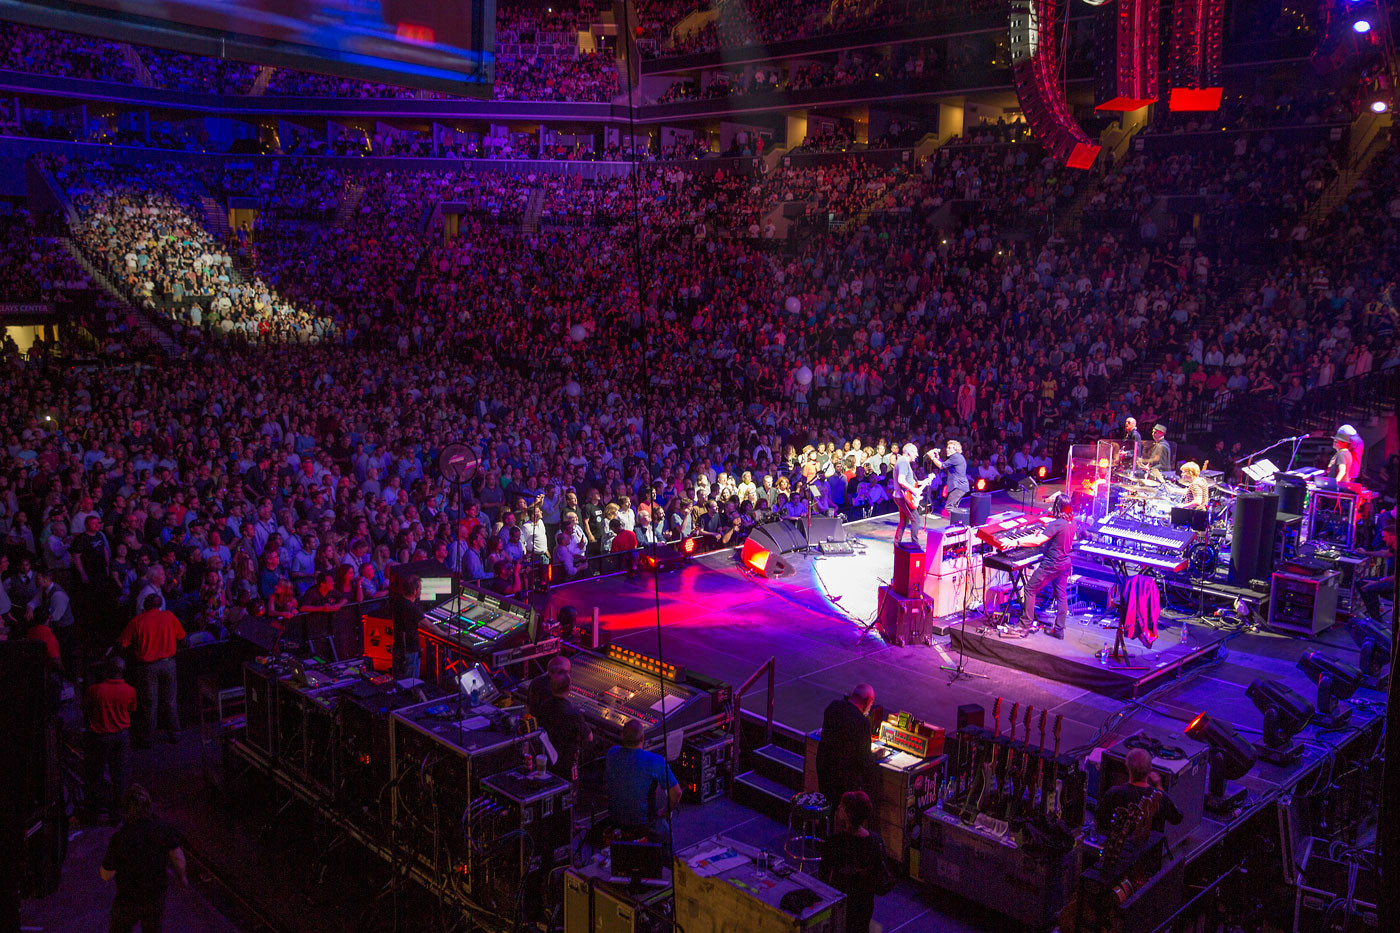 The Who concert stage and crowd